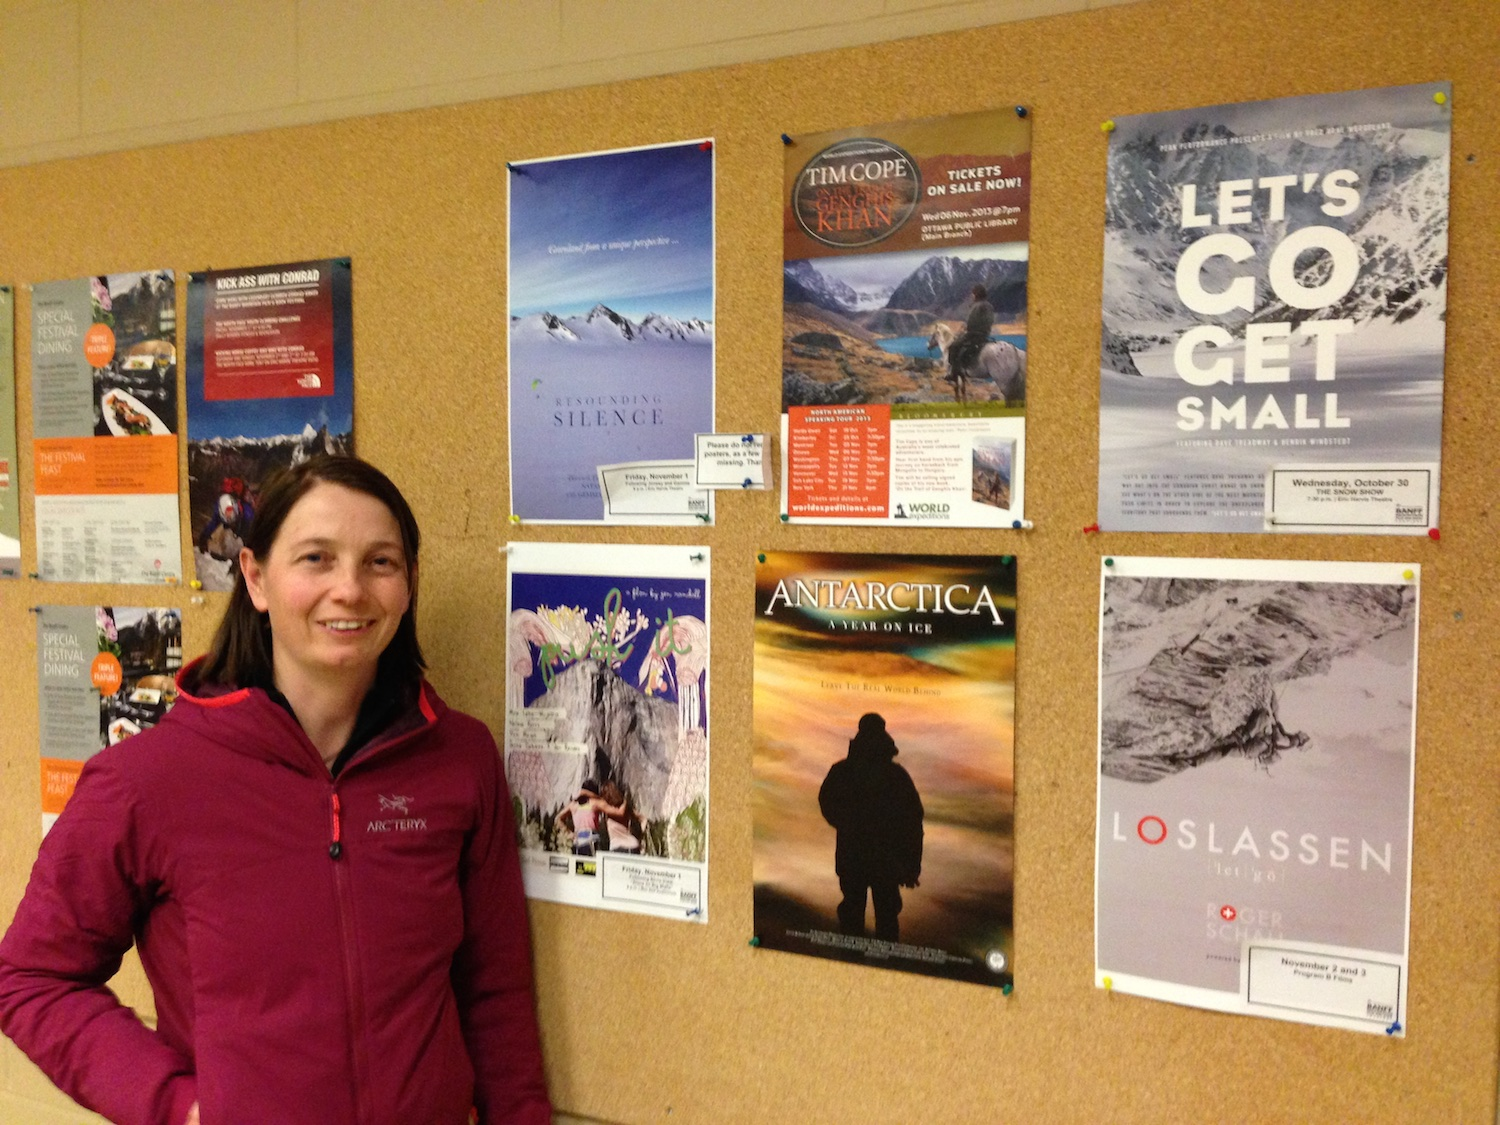 Tash next to her film poster among some of the other posters for the 2013 BMMF